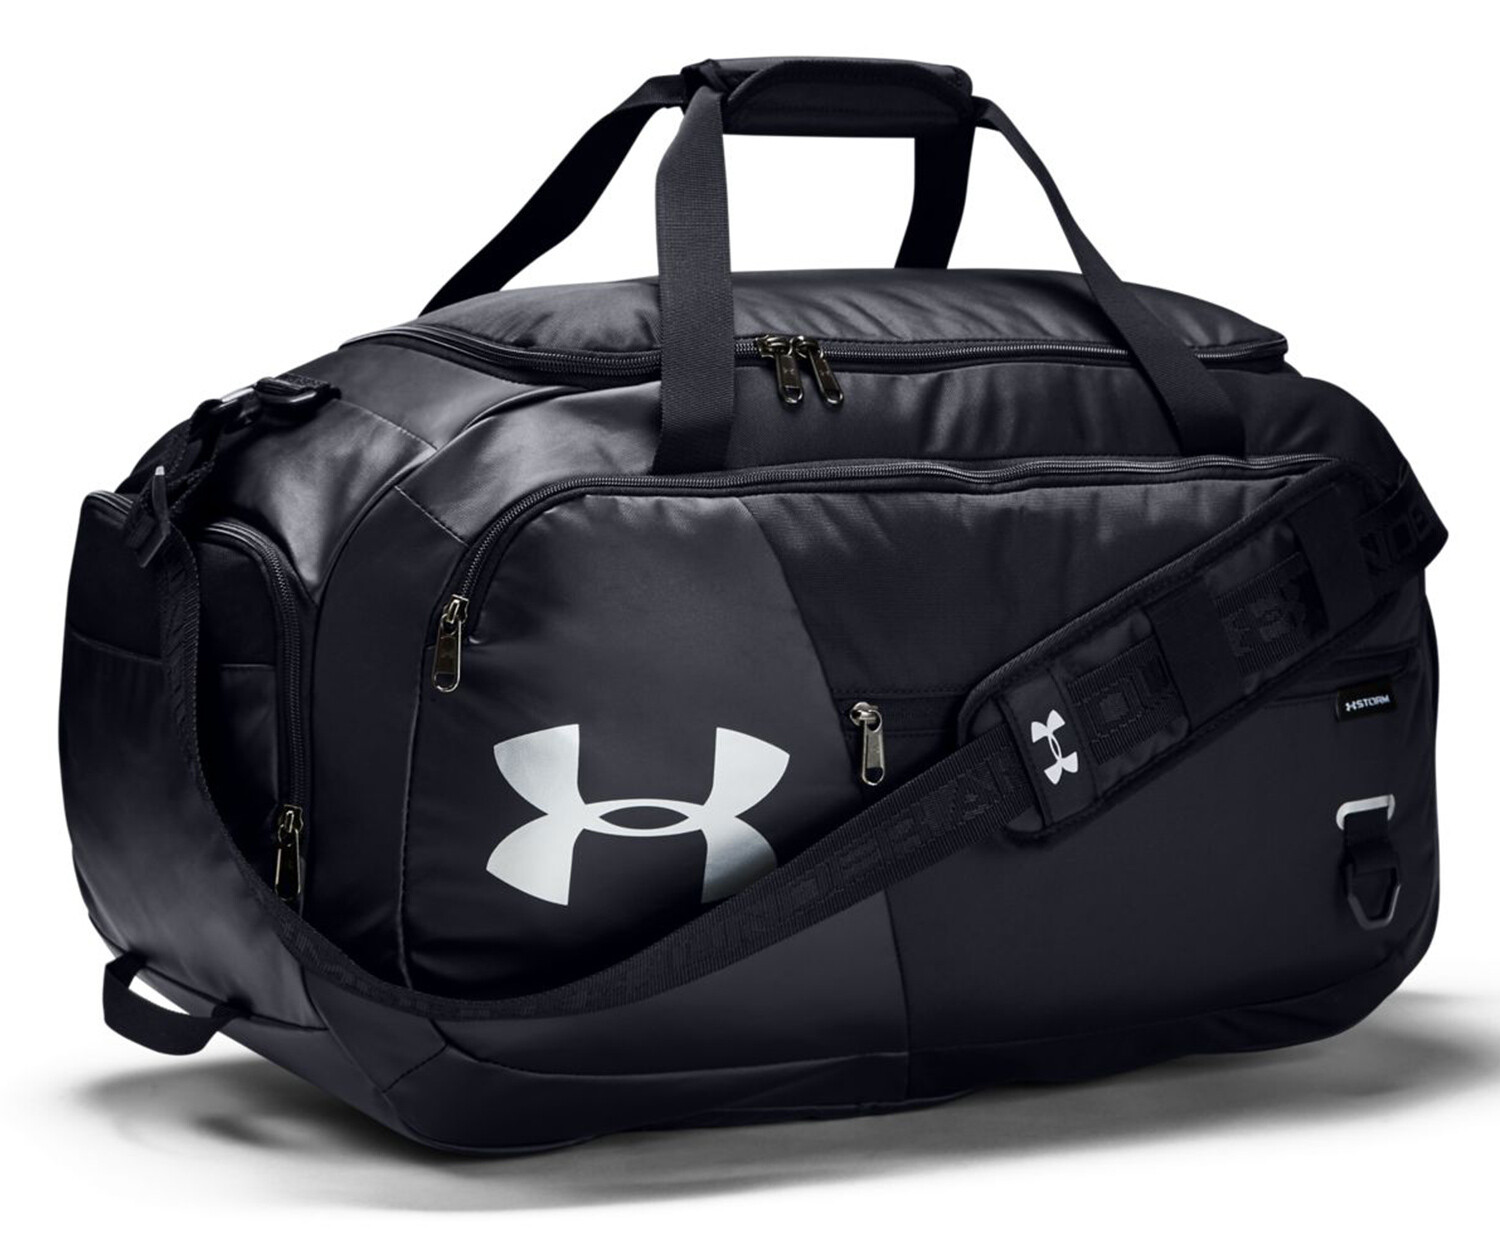 Сумка спортивная Undeniable Duffel 4.0 Medium Duffle Bag Black Under Armour